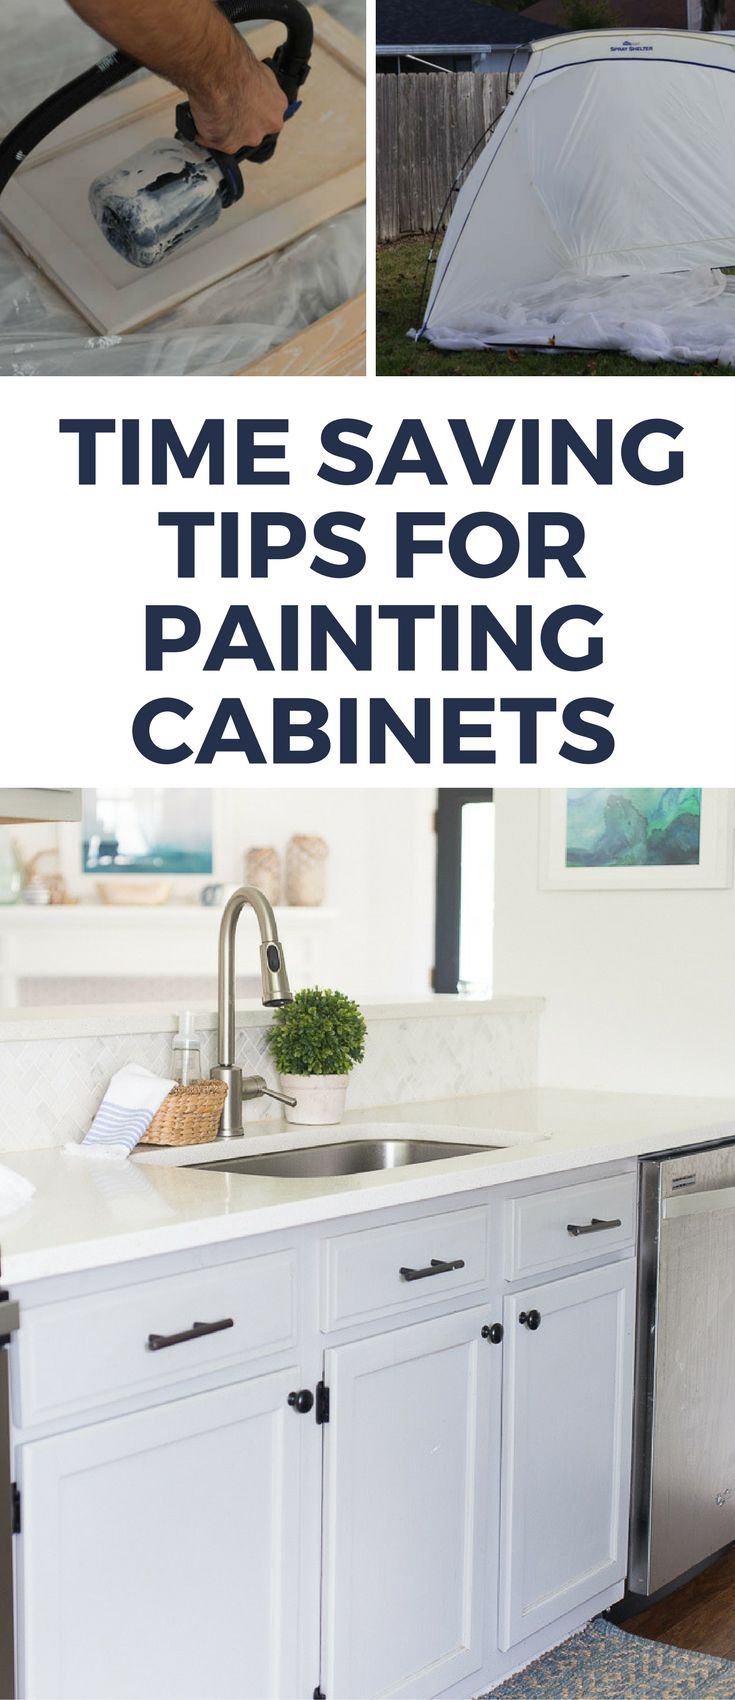 The 492 best Wood Stain, Paint, and Finish Techniques images on ...